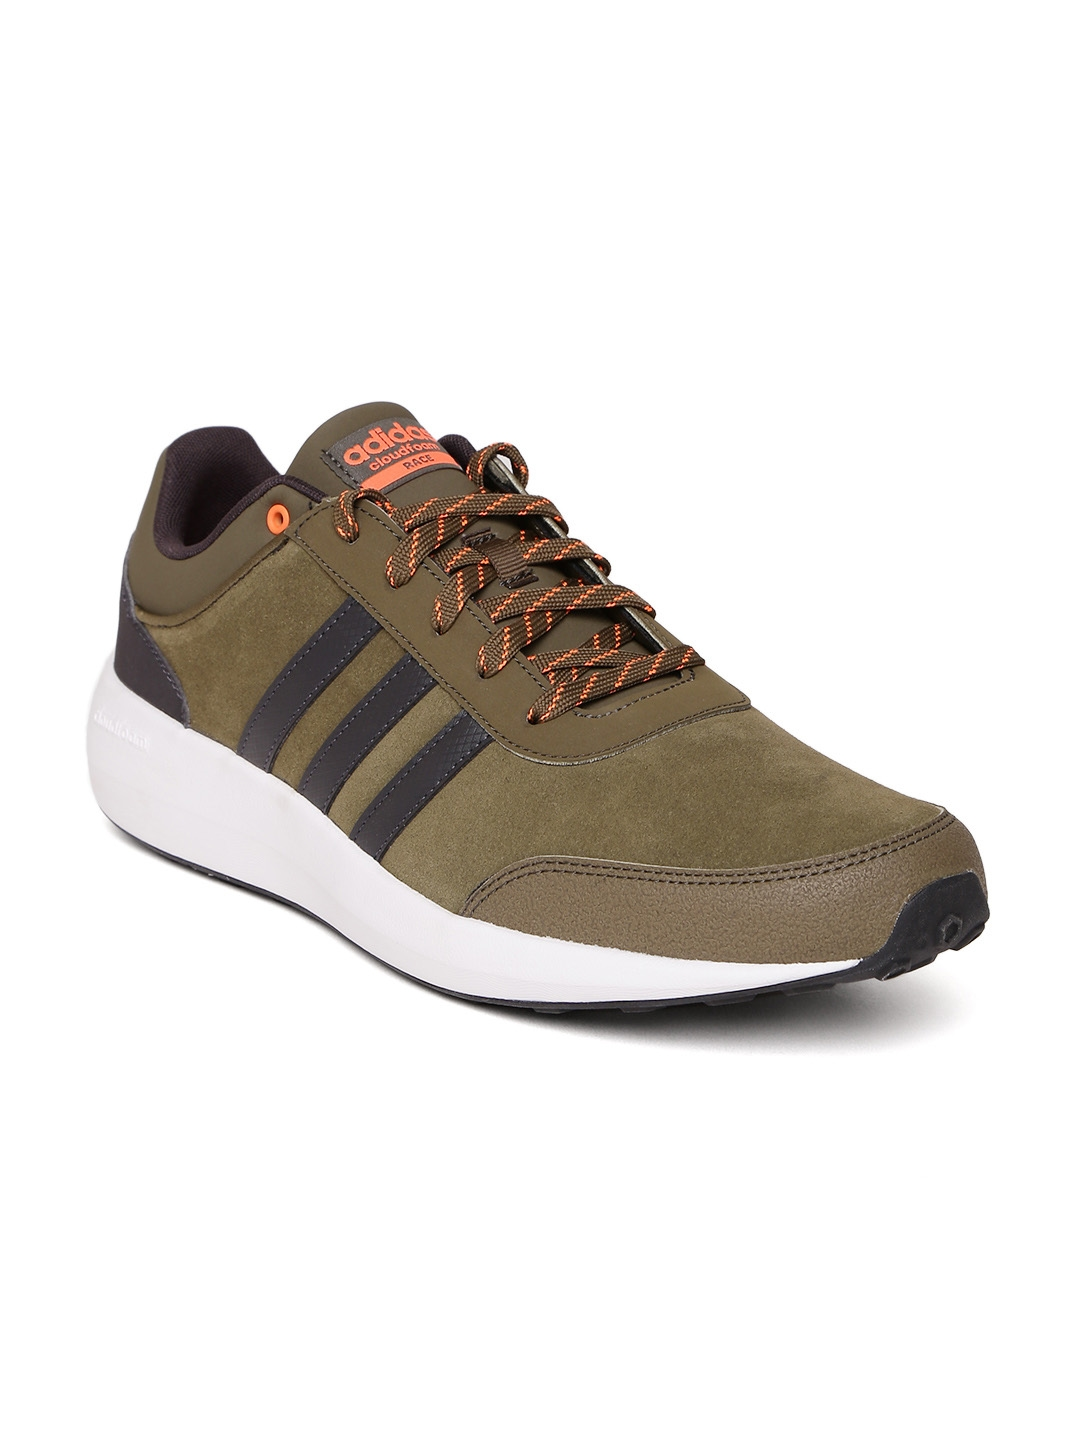 Gorgeous High Quality Adidas Neo Men Shoes Boots Cloudfoam